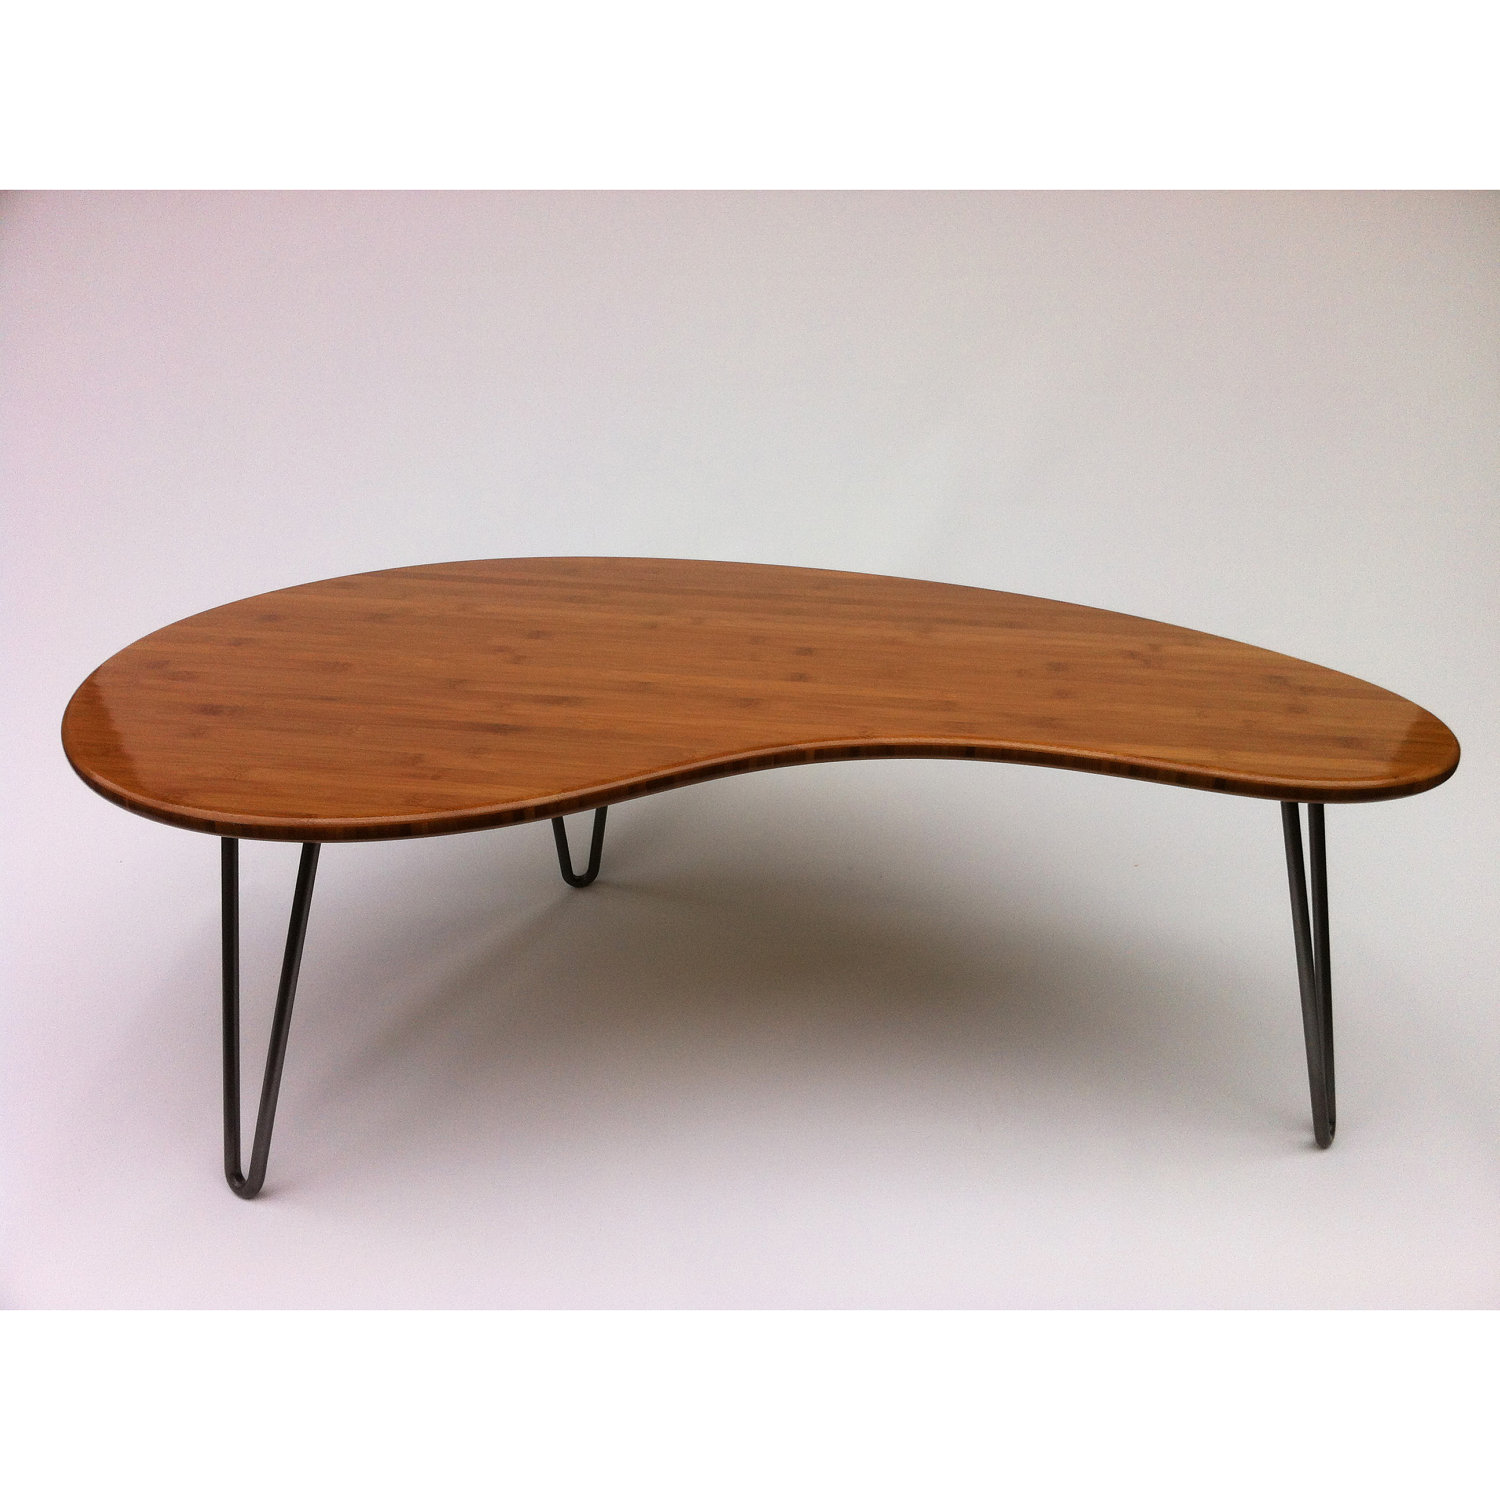 Modern Wood Coffee Table Reclaimed Metal Mid Century Round Natural Diy Contemporary Mid Century Modern Coffee Tables (Image 2 of 10)